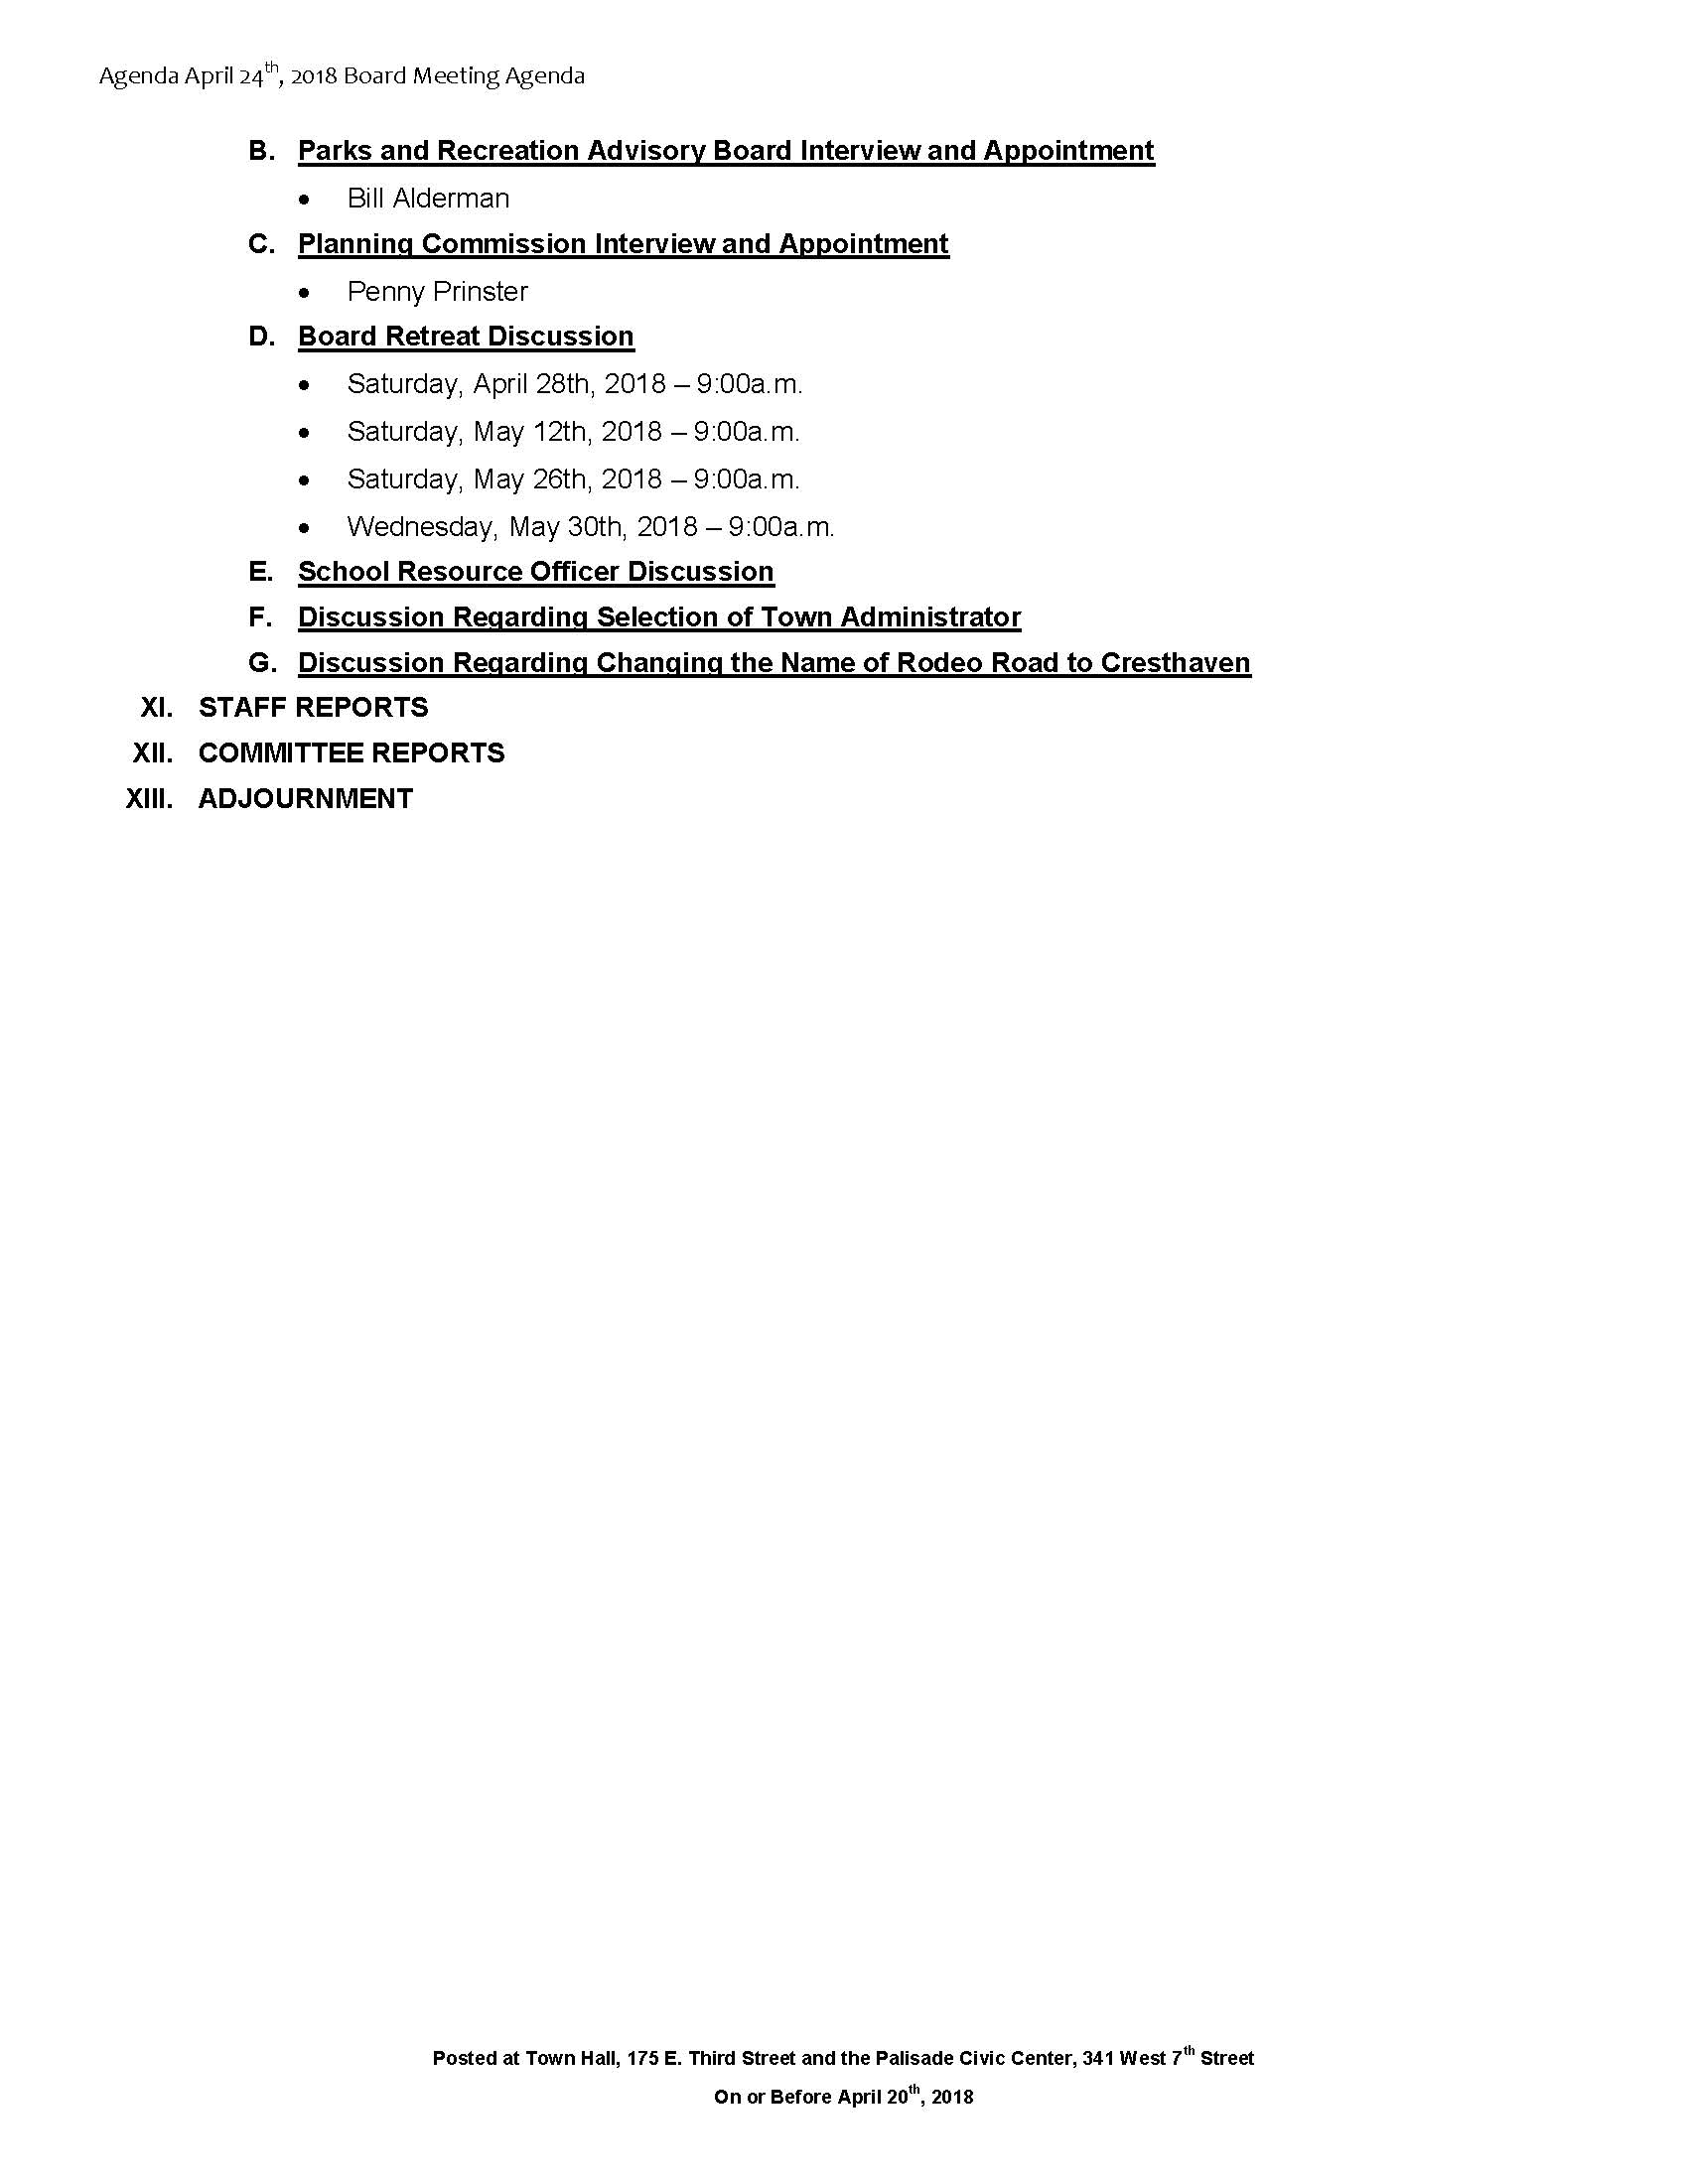 April 24th 2018 Board Meeting Agenda Page 2